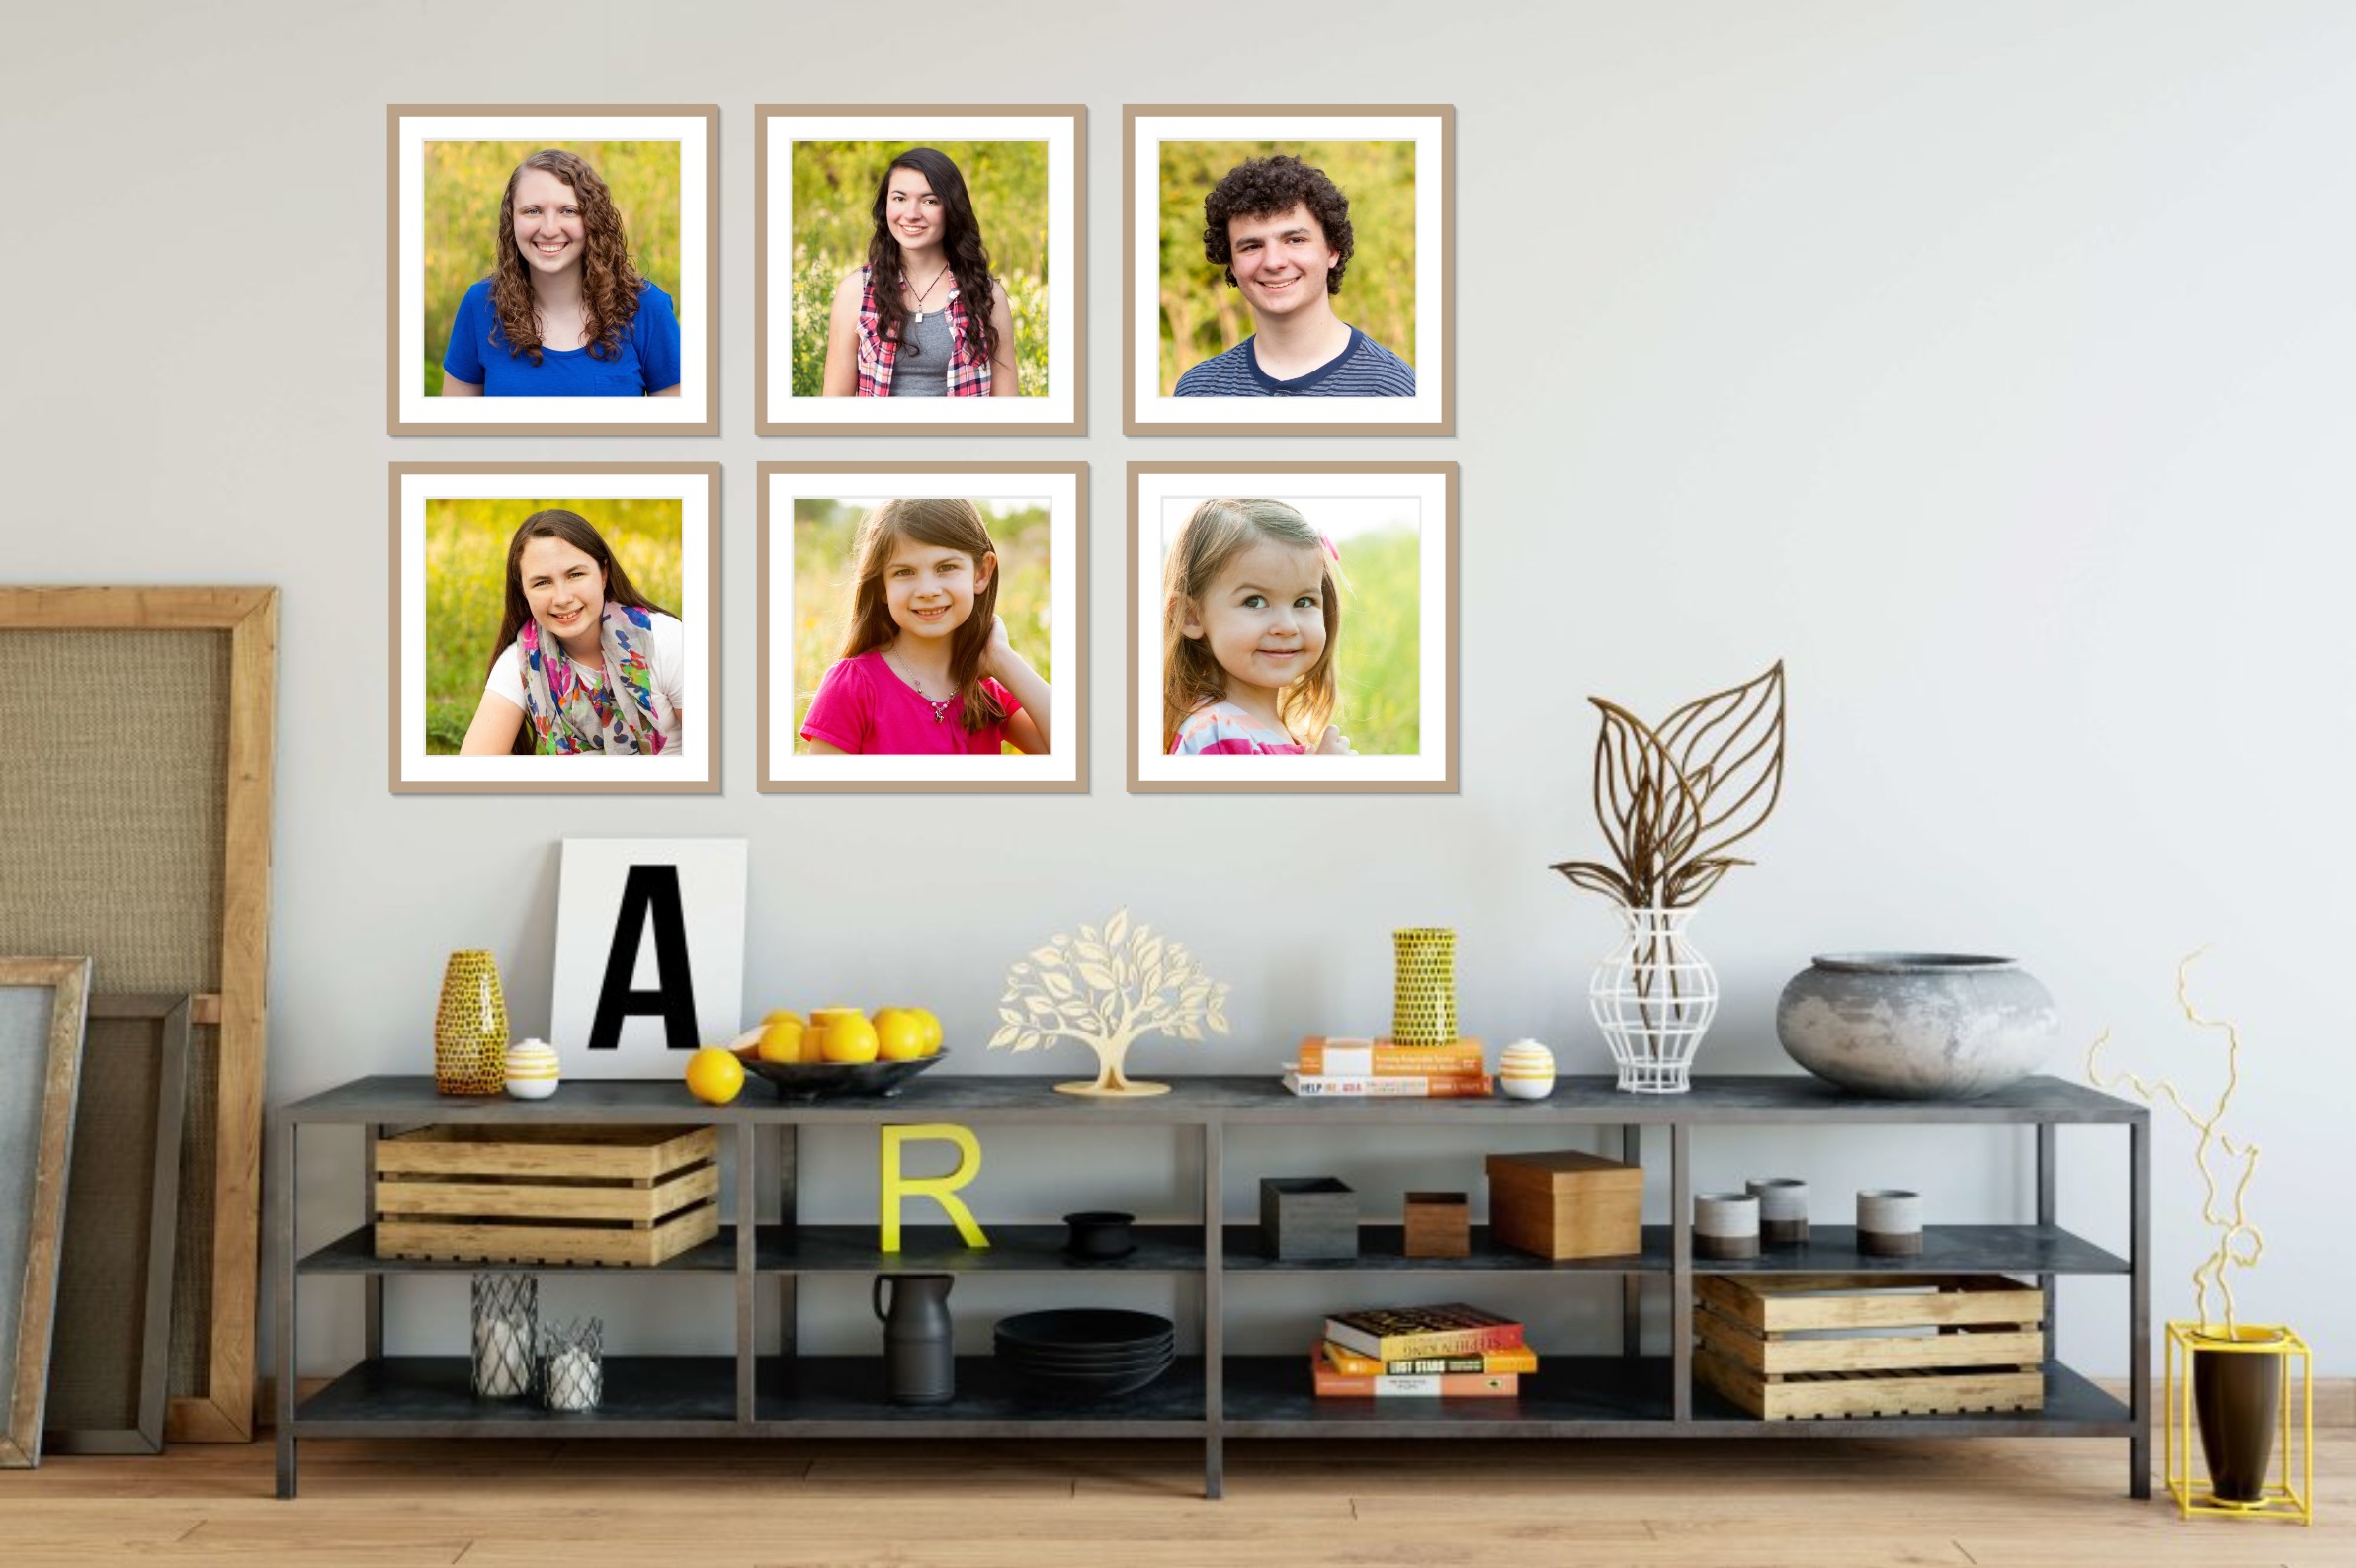 Display your family photos in your home